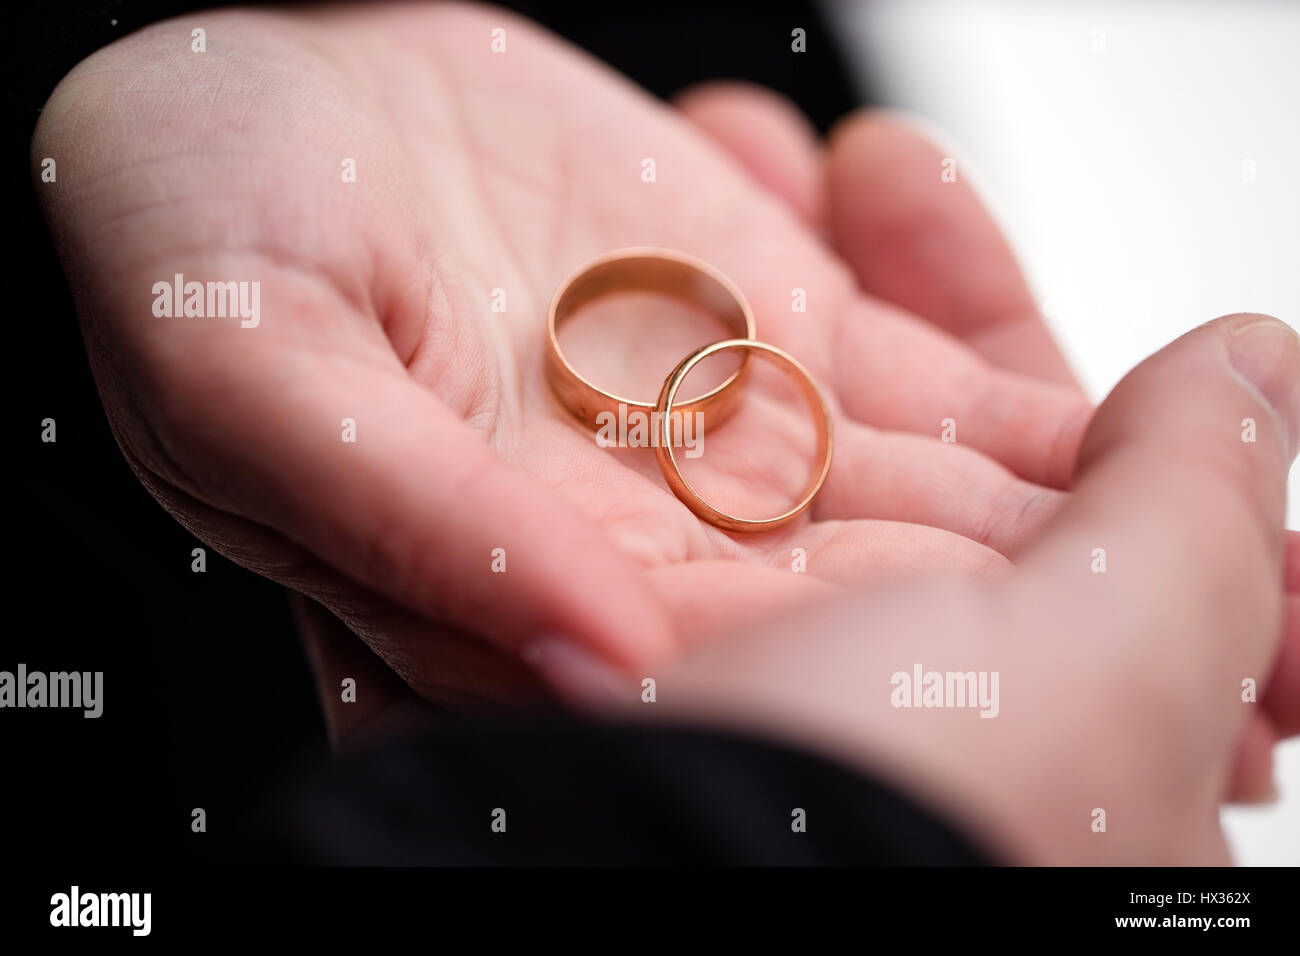 Diamond Necklace Ring Rings Stock Photos & Diamond Necklace Ring ...